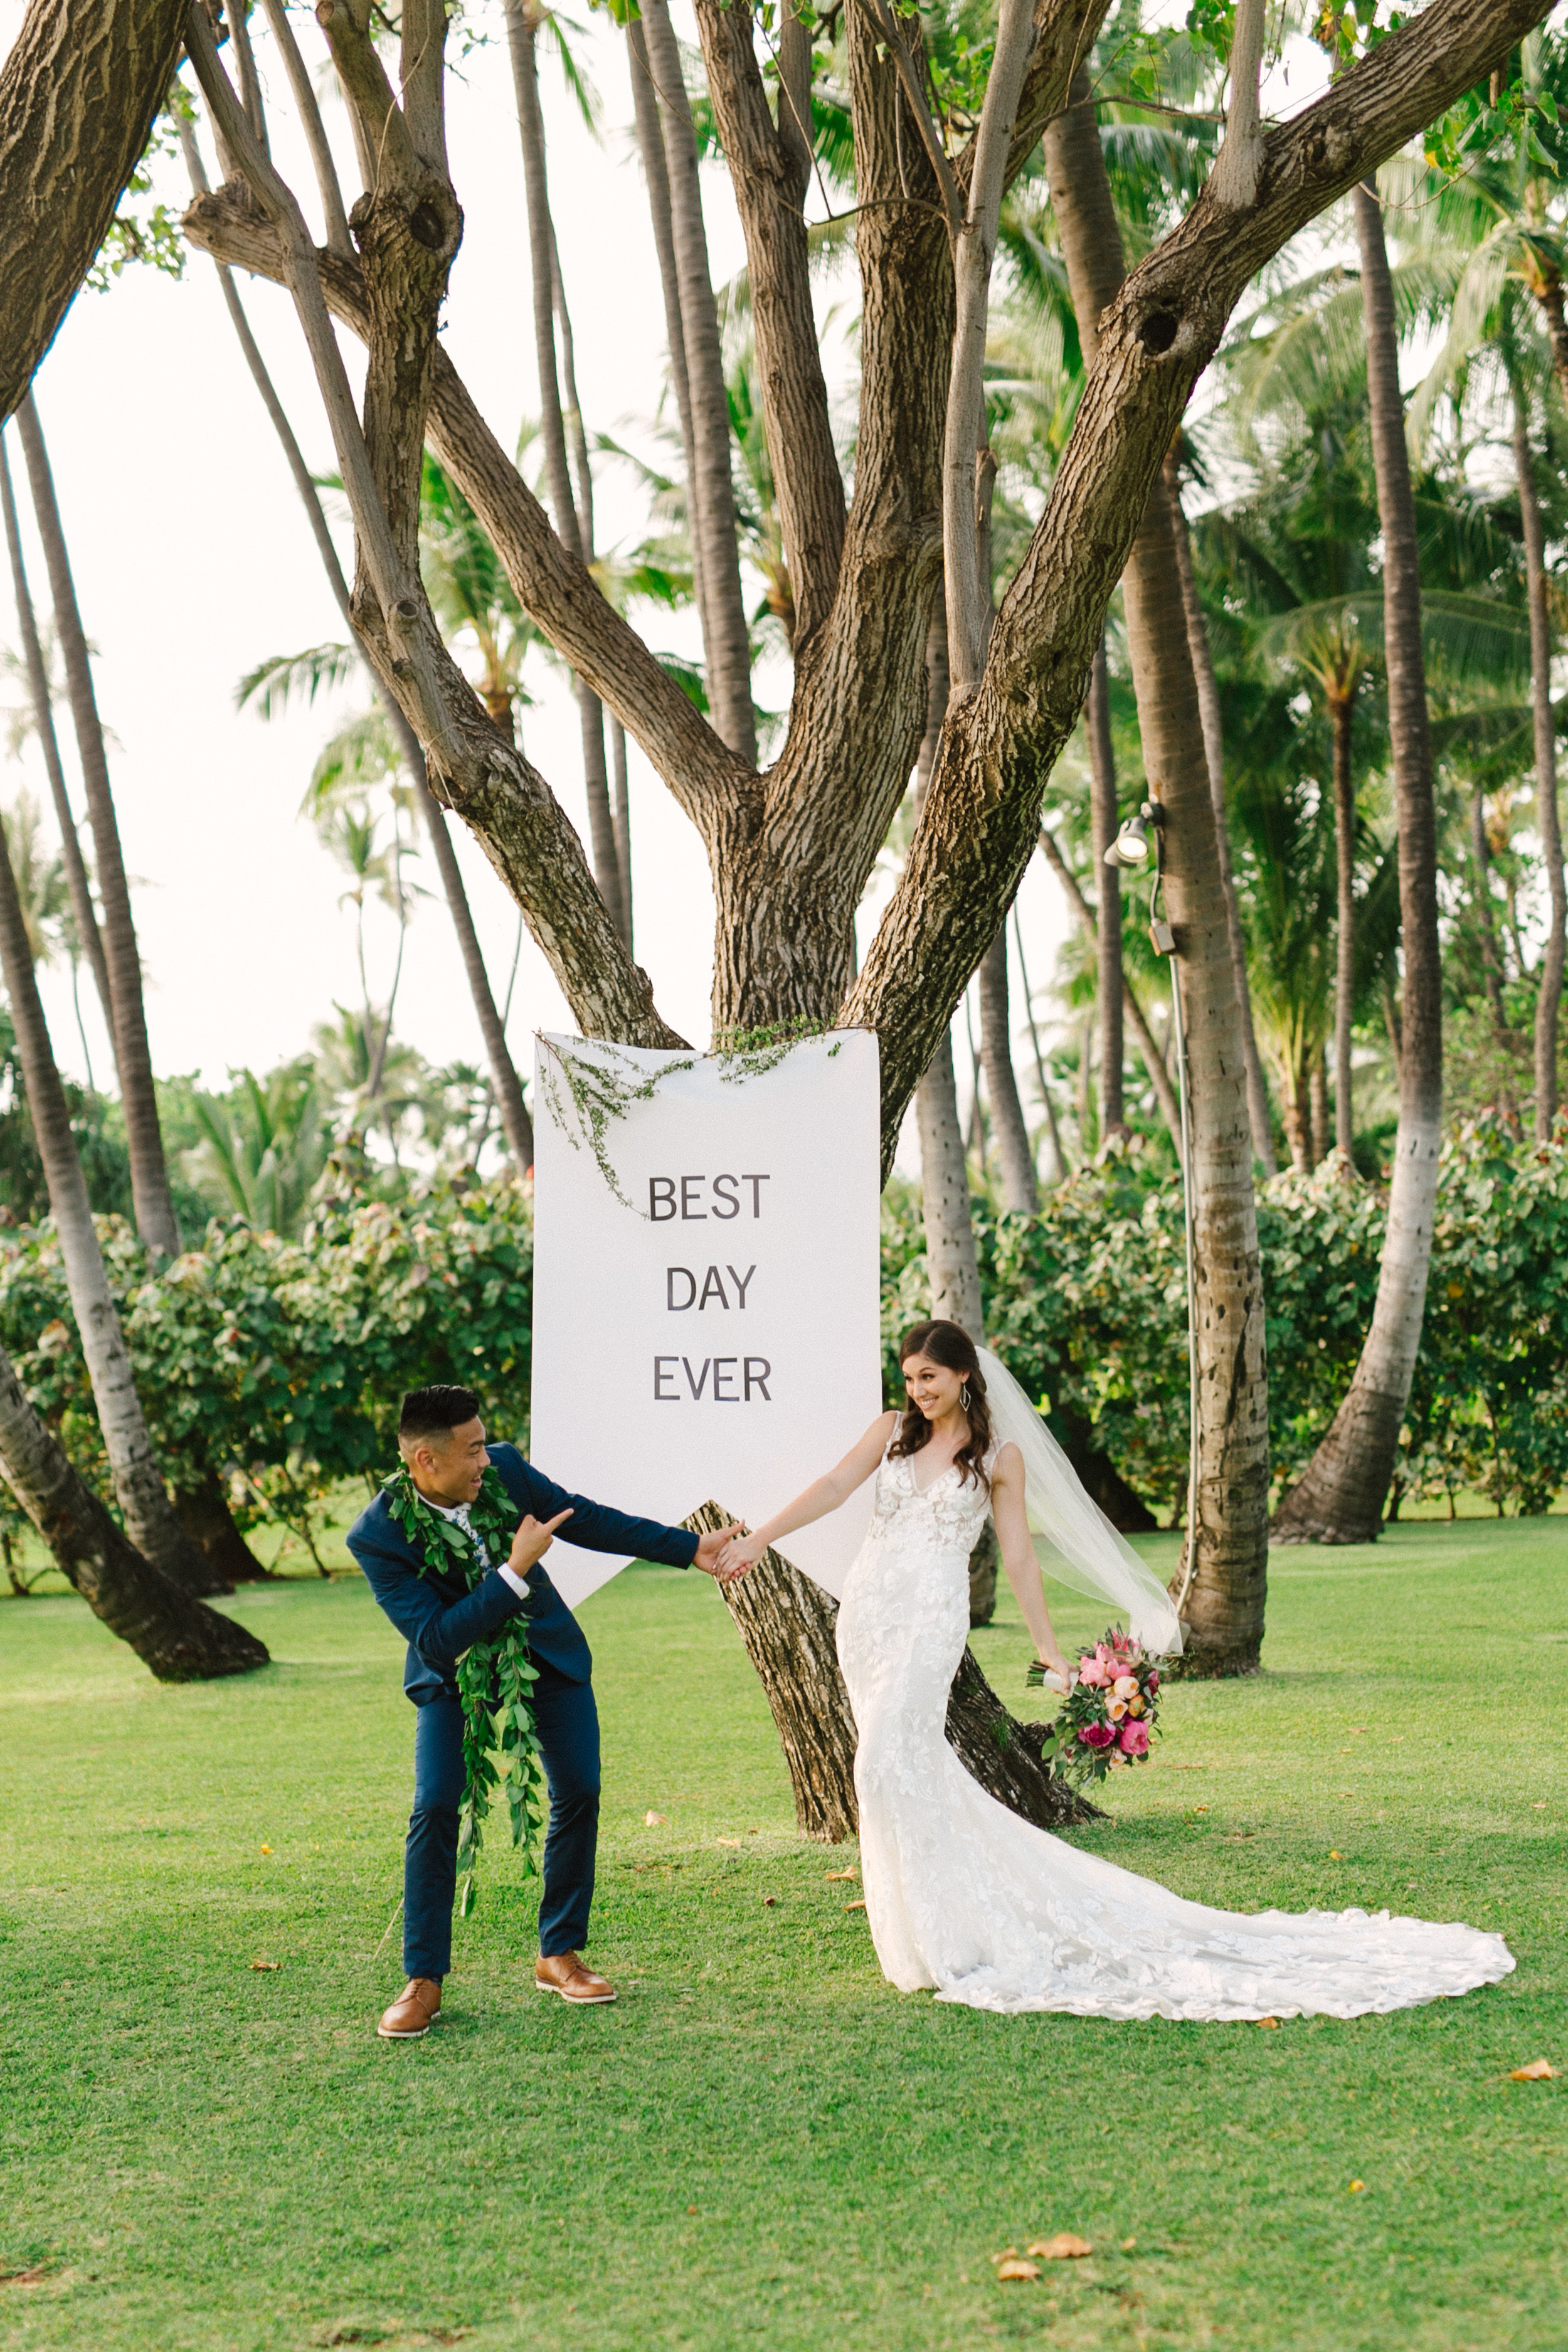 Brett and Jess - Best Day Ever